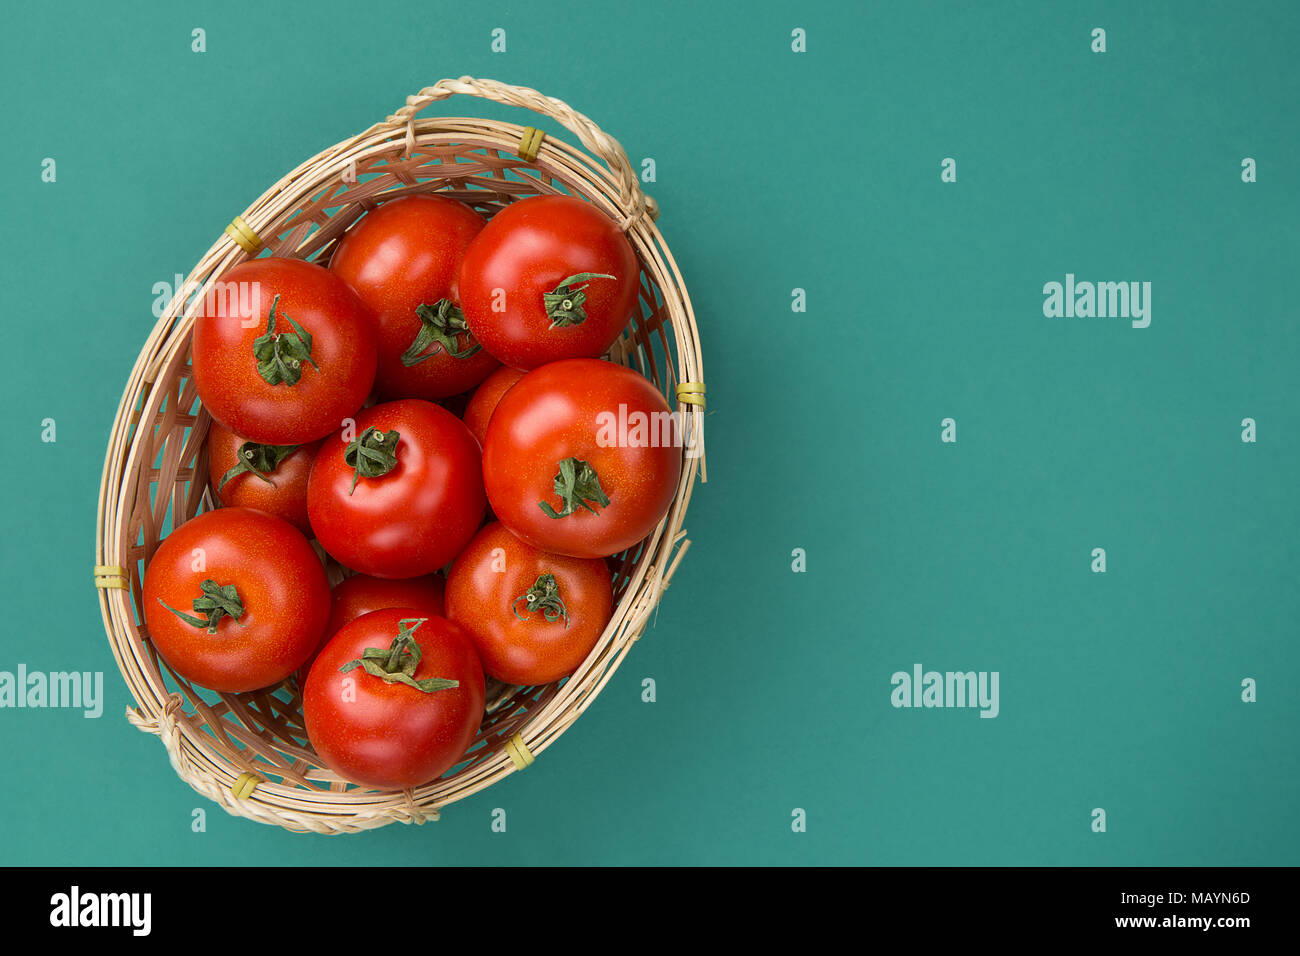 Authentic Greek Food Stock Photos & Authentic Greek Food Stock ...